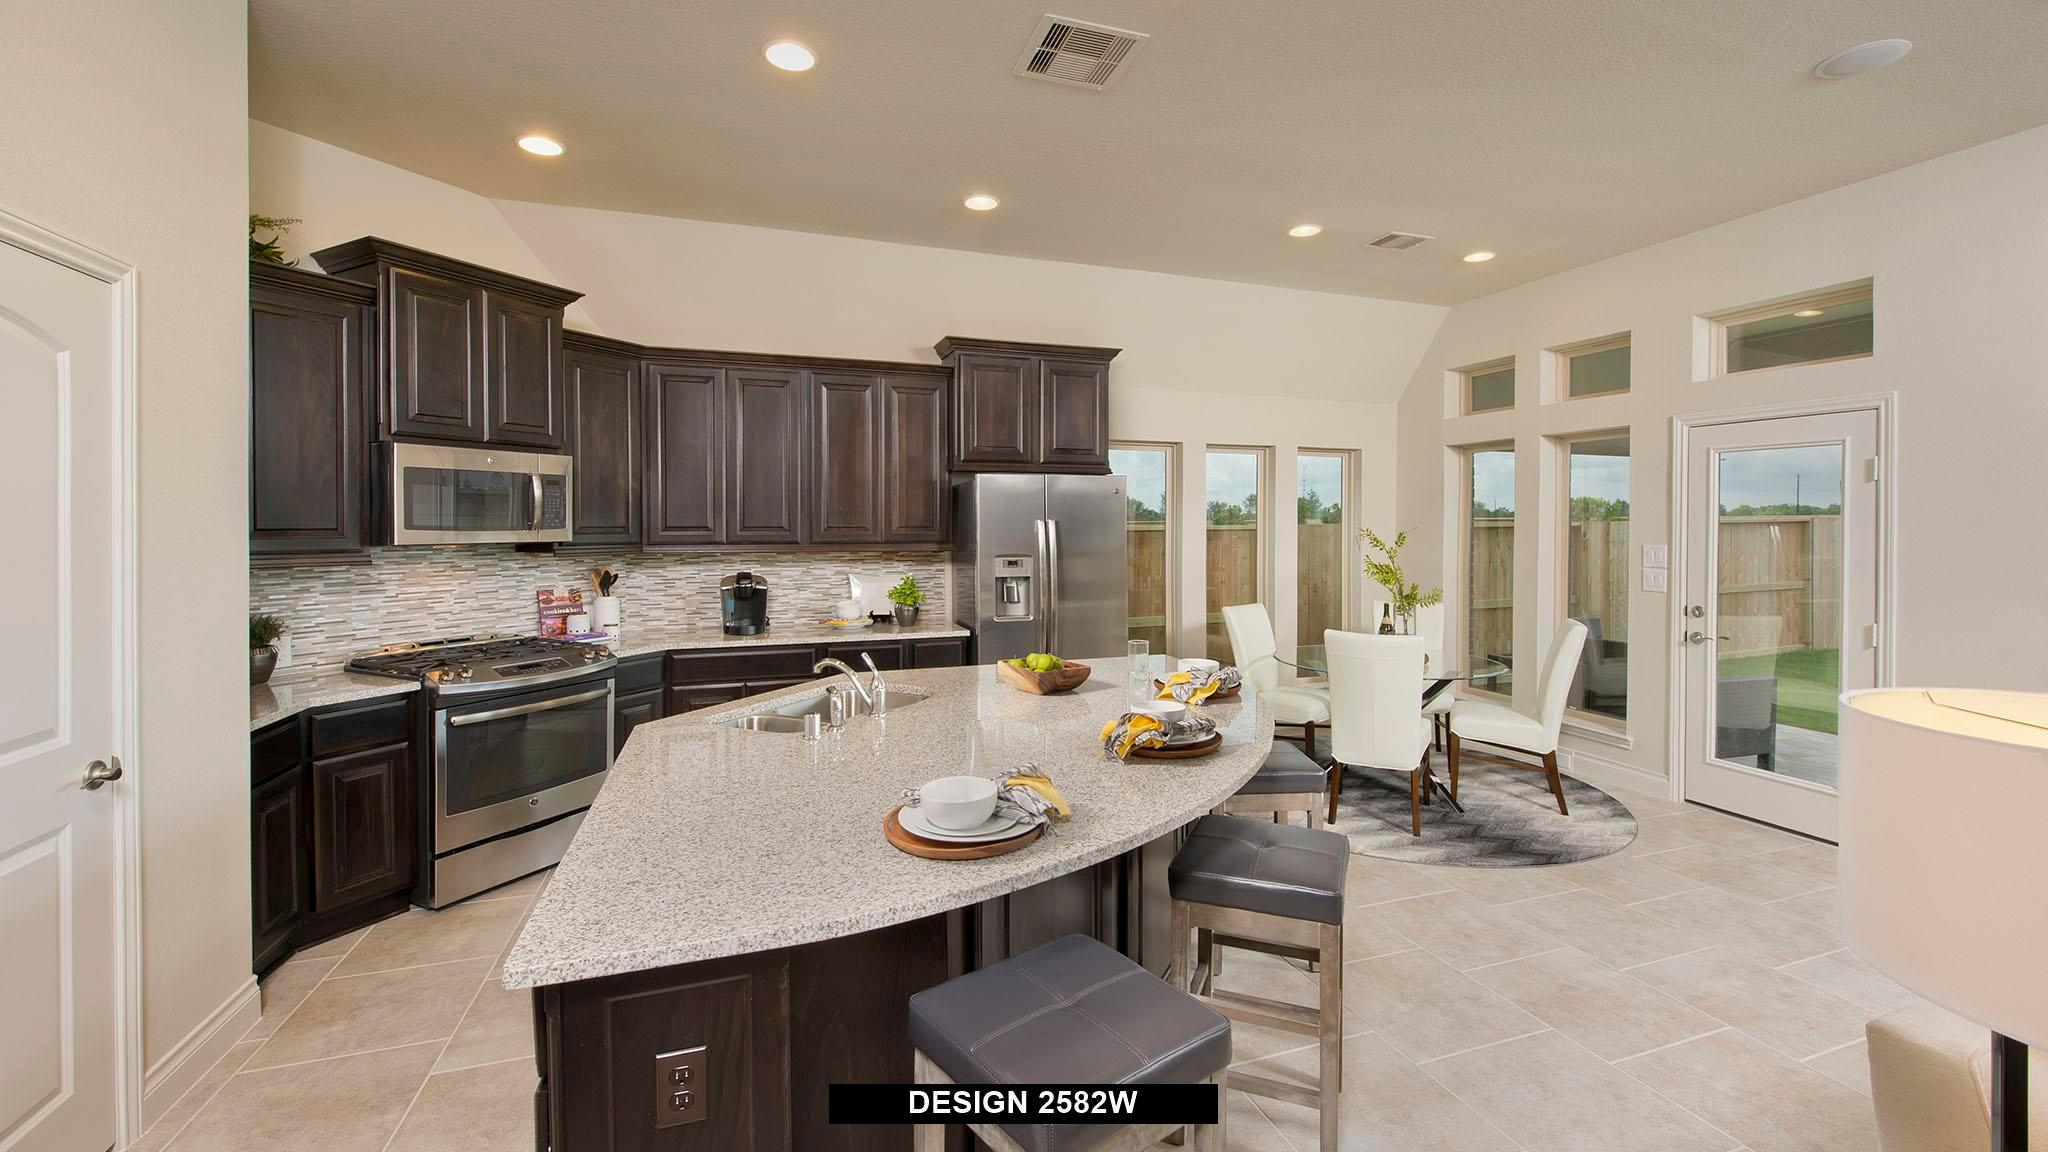 Kitchen featured in the 2582W By Perry Homes in Dallas, TX